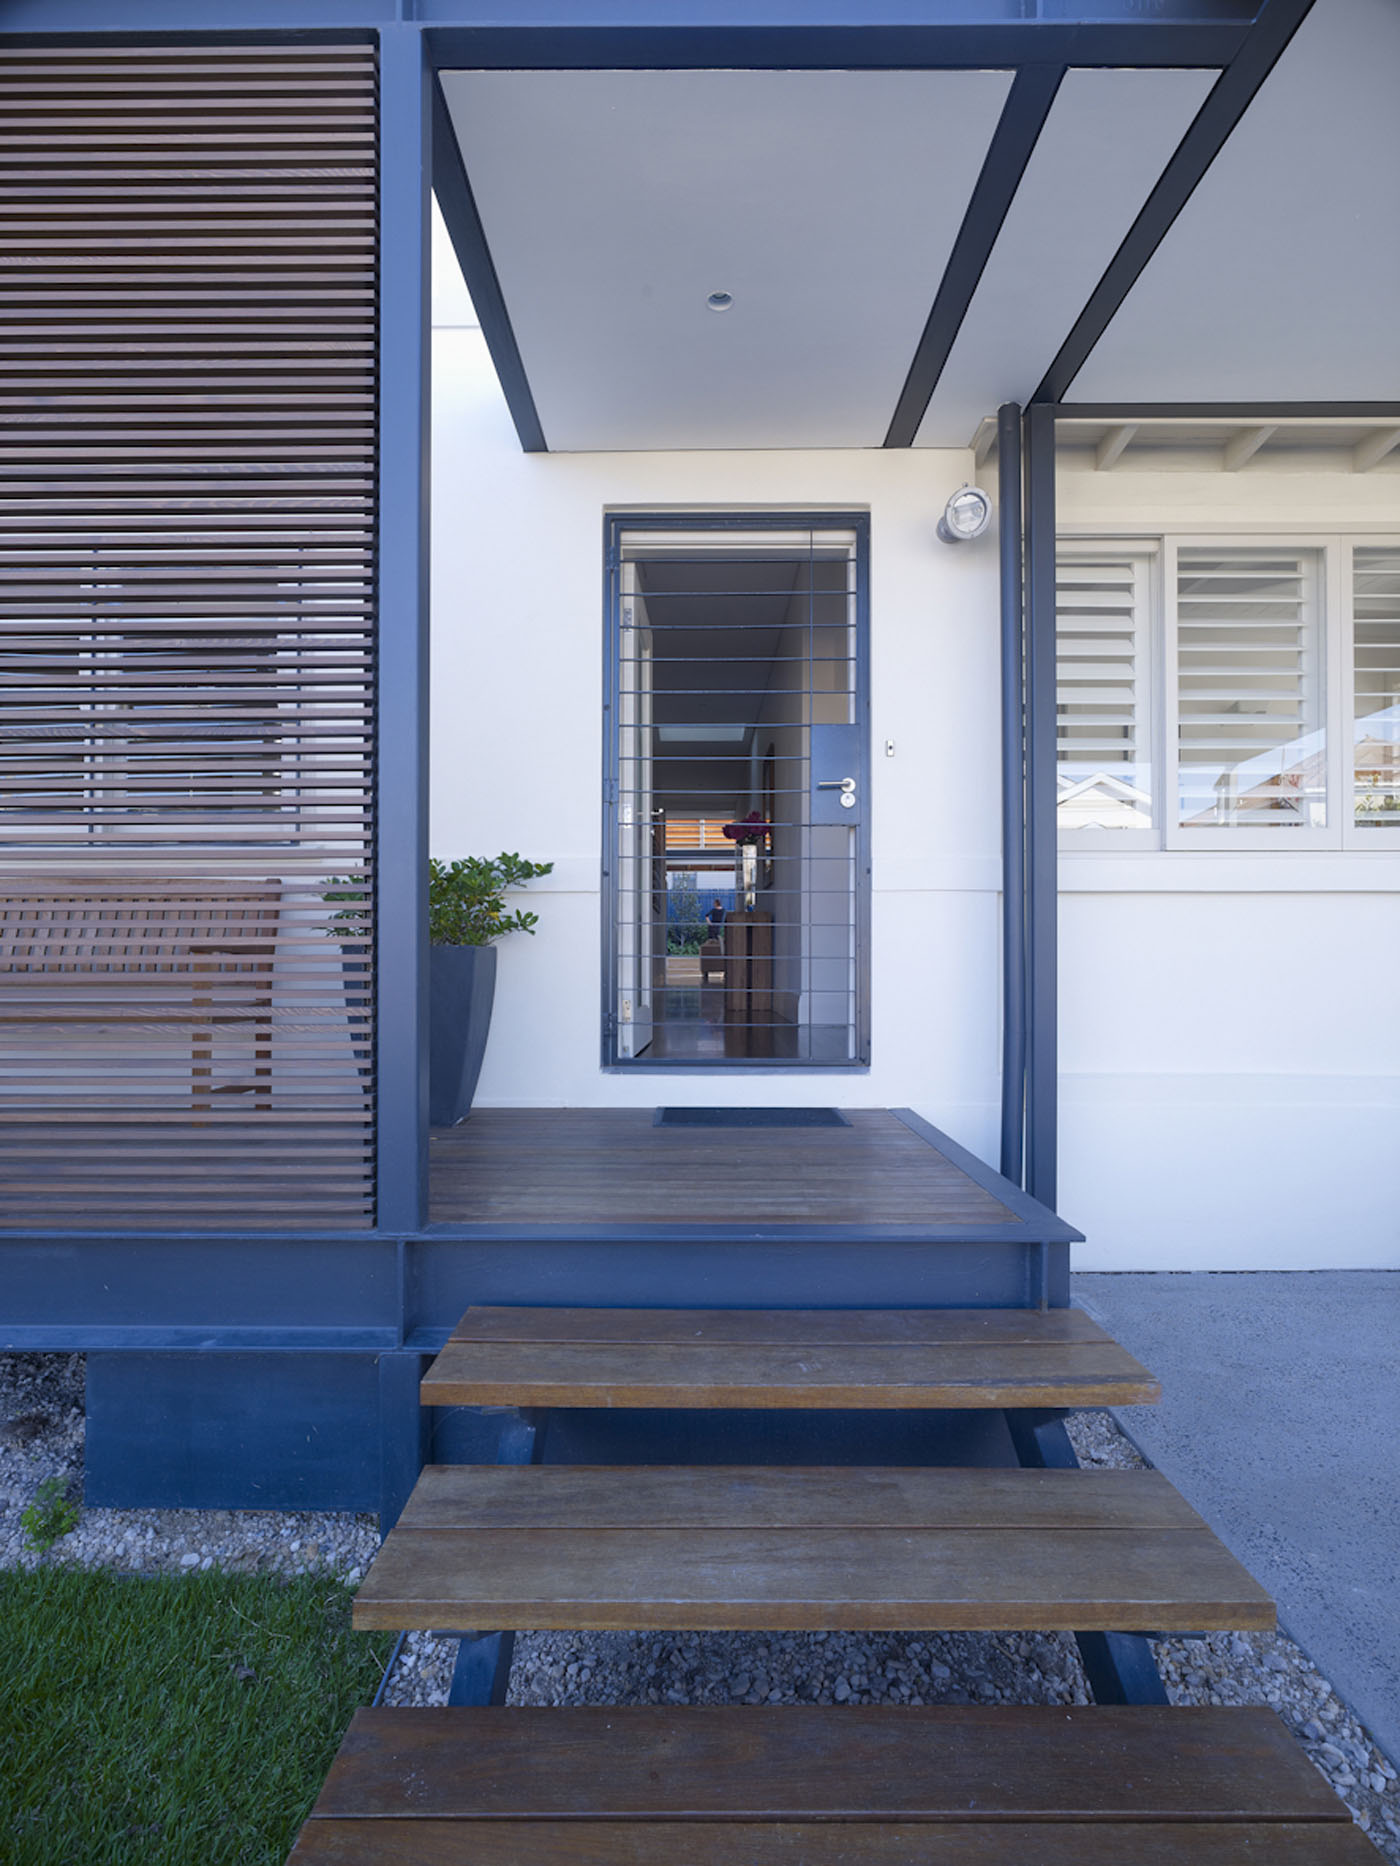 Lambert House by Sydney award winning residential architecture office Sam Crawford Architects. Spotted gum timber board decking with covered pergola at front entry.